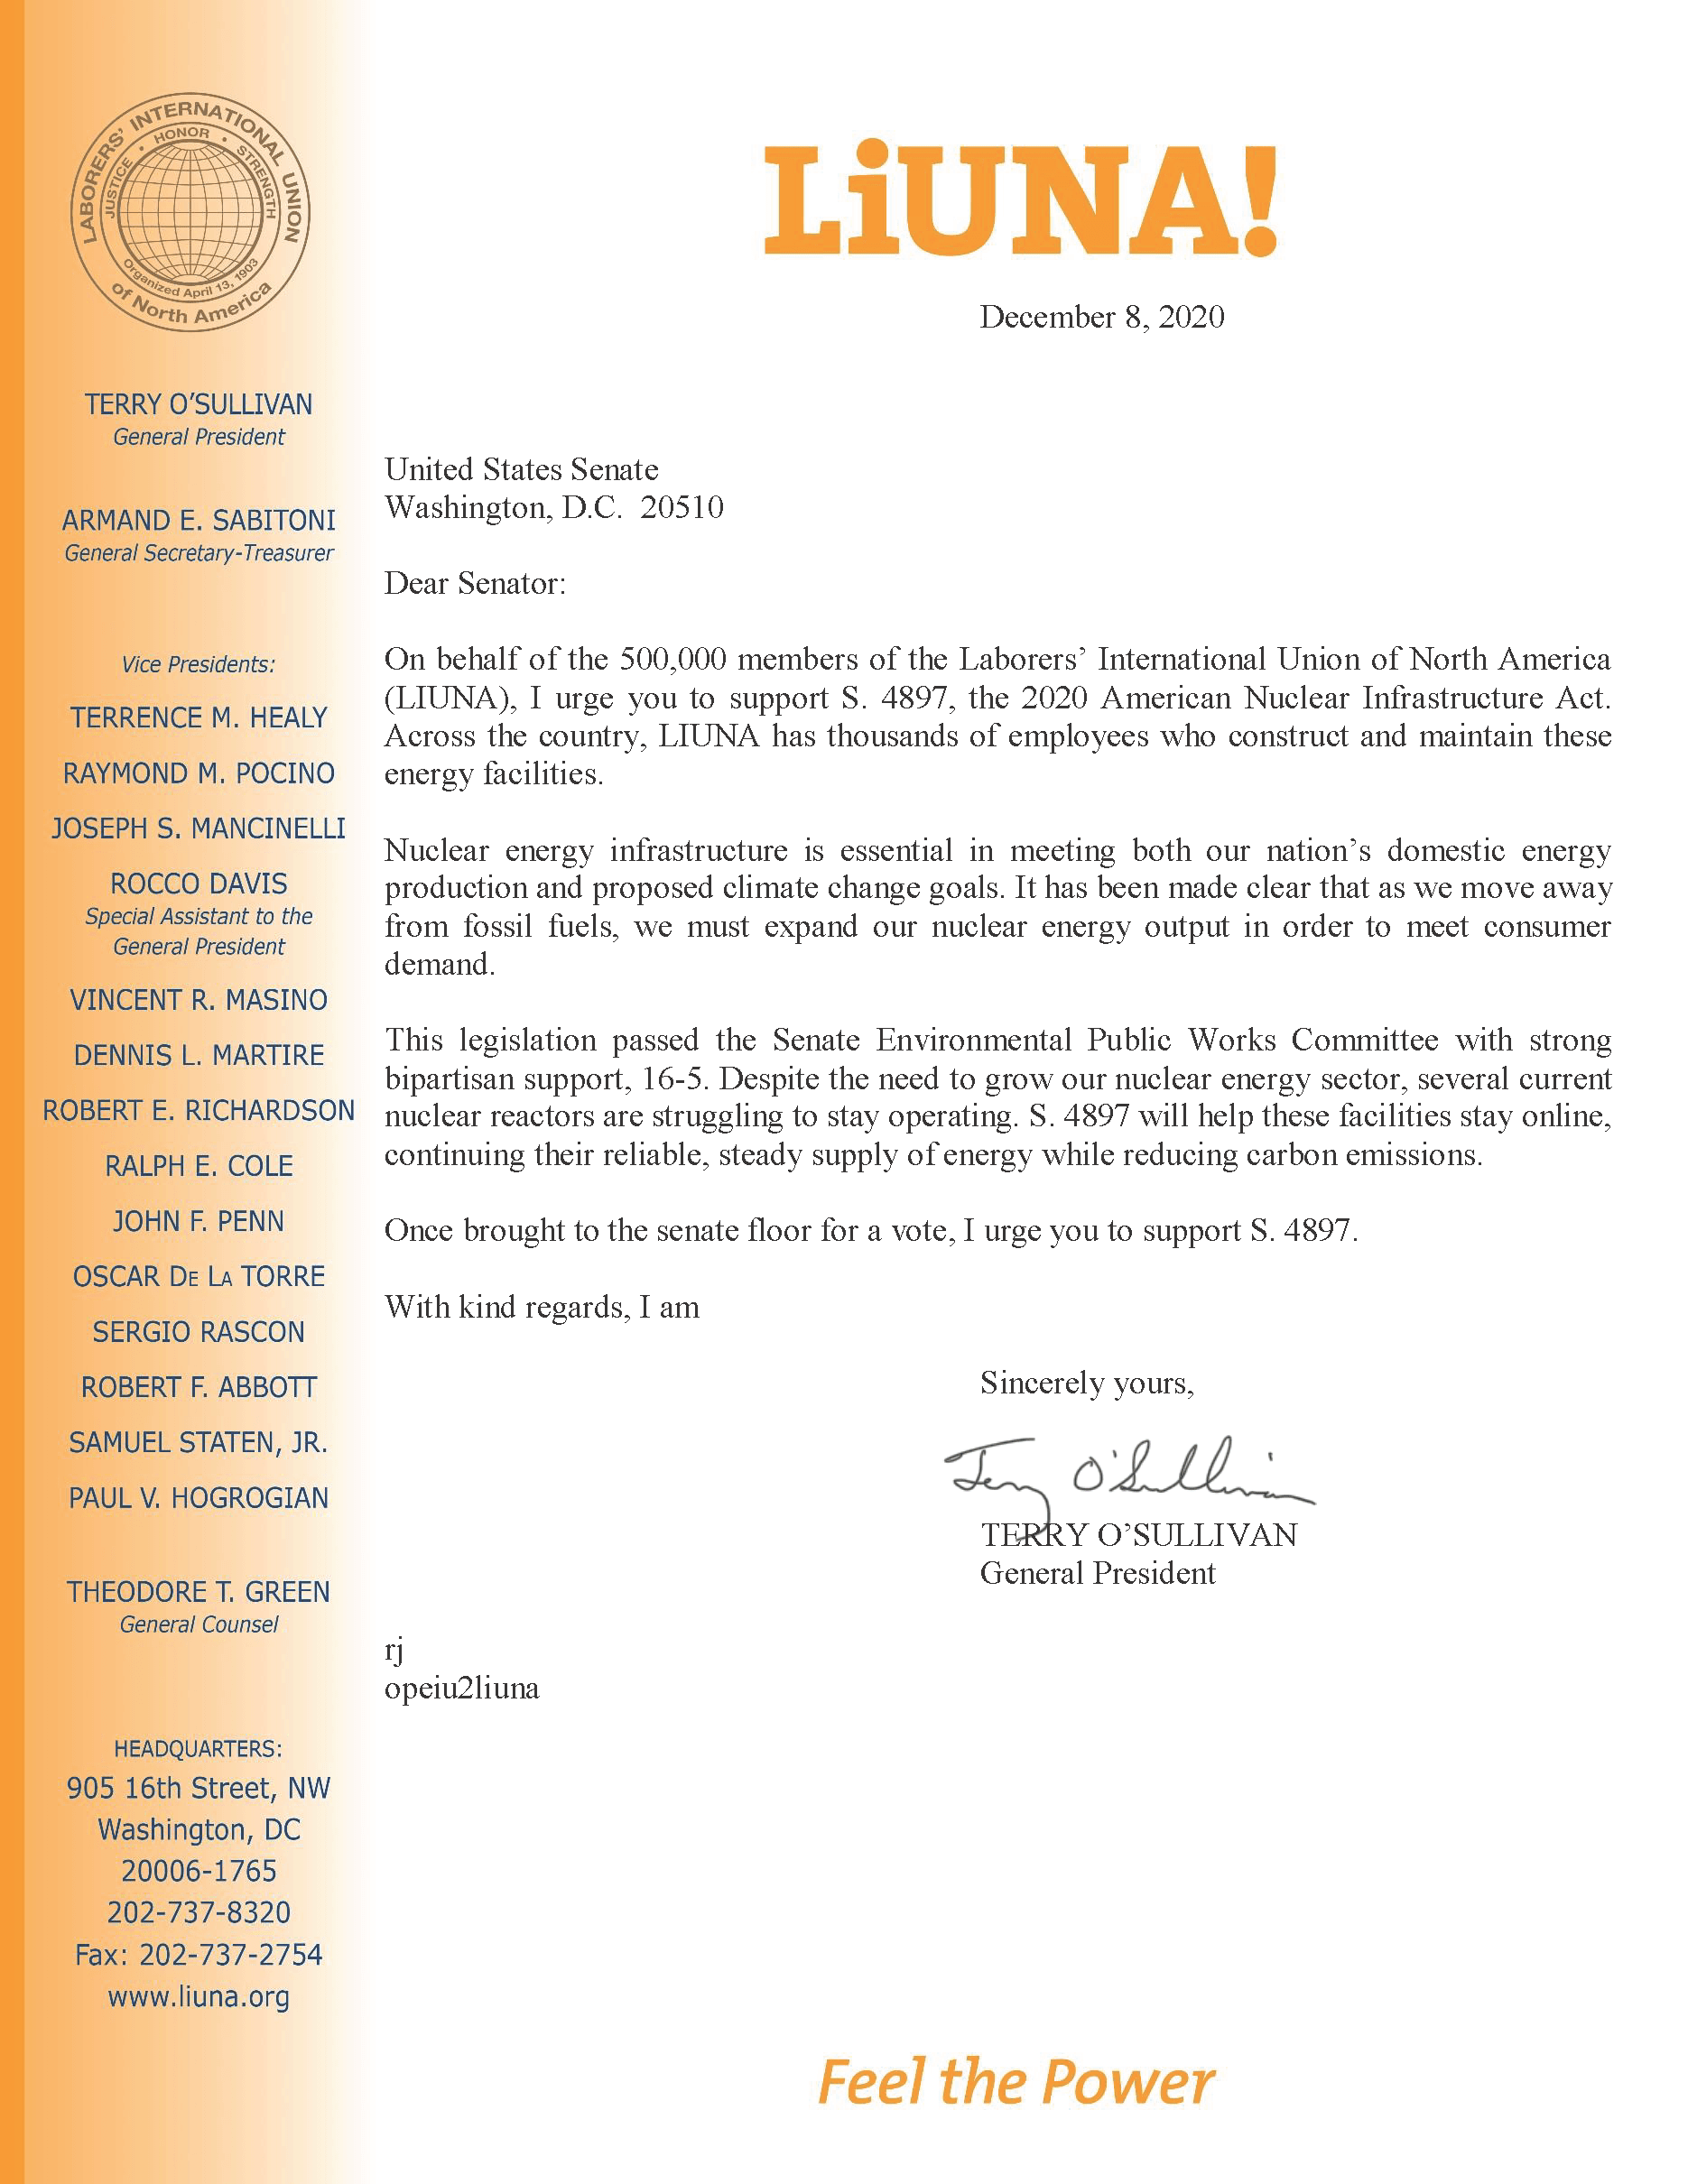 Senate Nuclear Support Letter Dec 8 2020.png